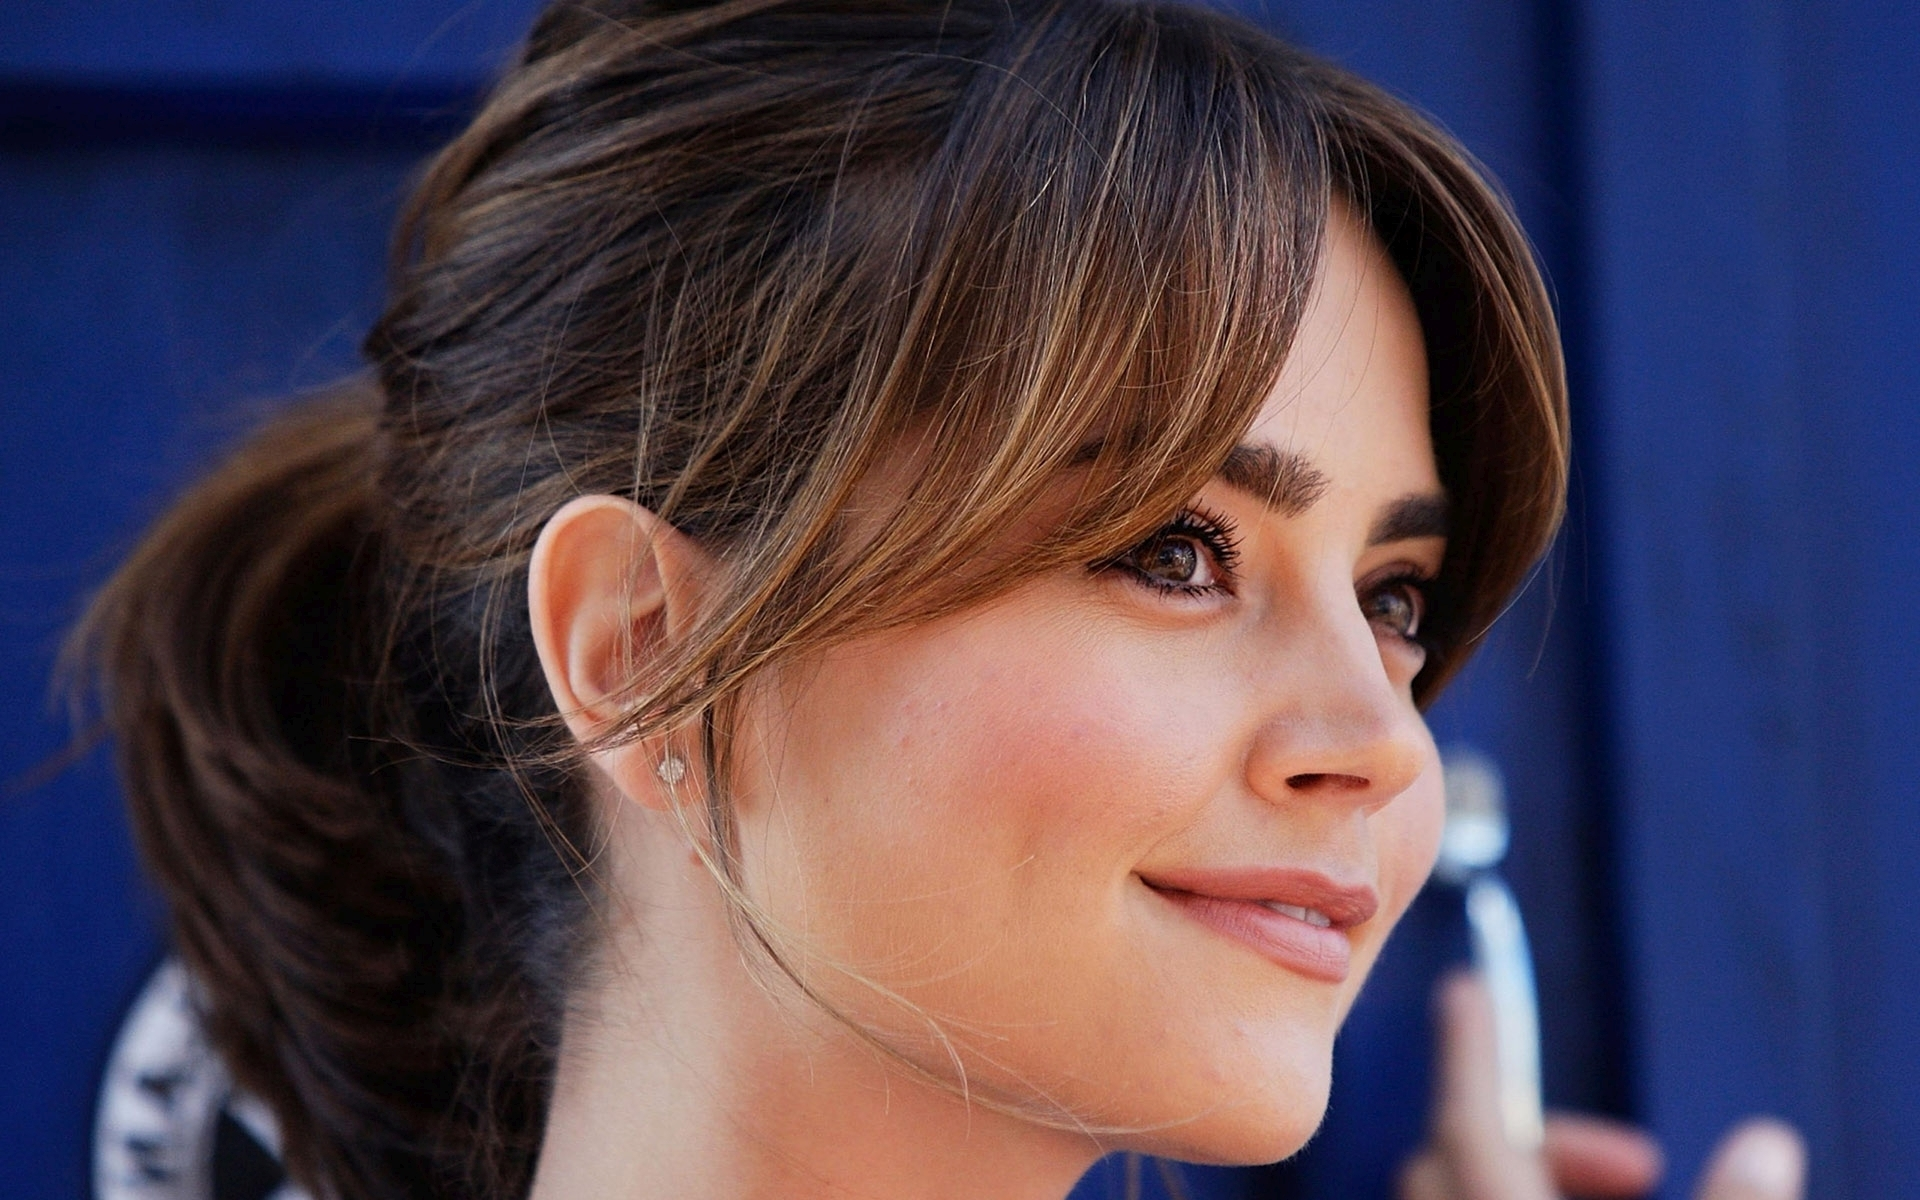 jenna coleman face hd wallpaper 57814